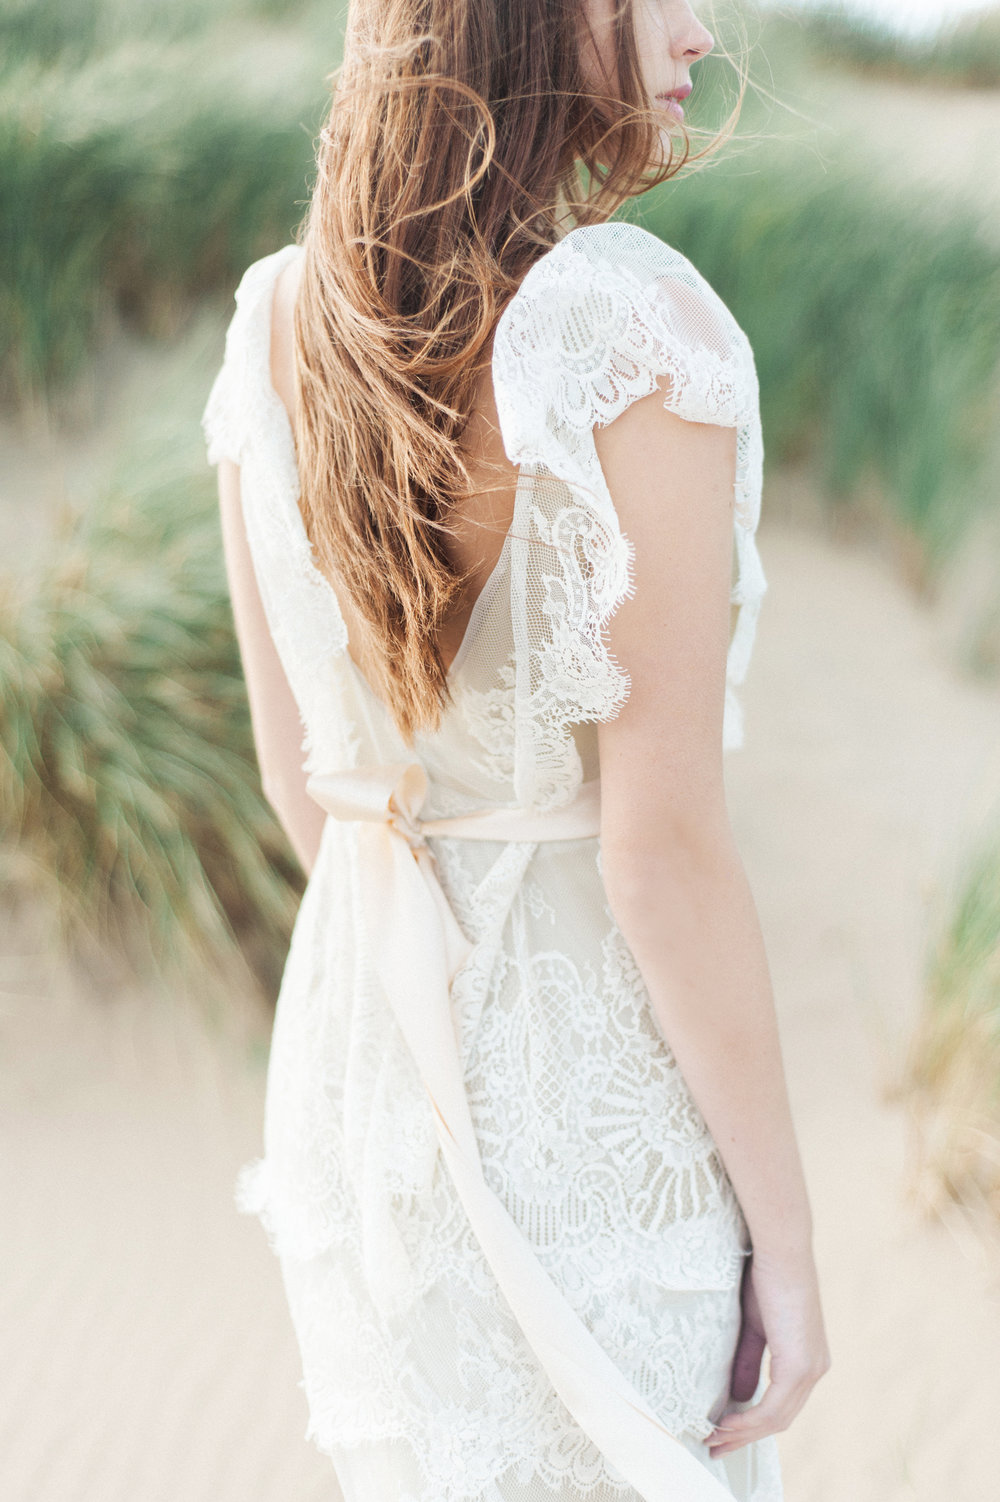 Kate-Beaumont-Wedding-Dresses-Formby-Beach-Emma-Pilkington-21.jpg